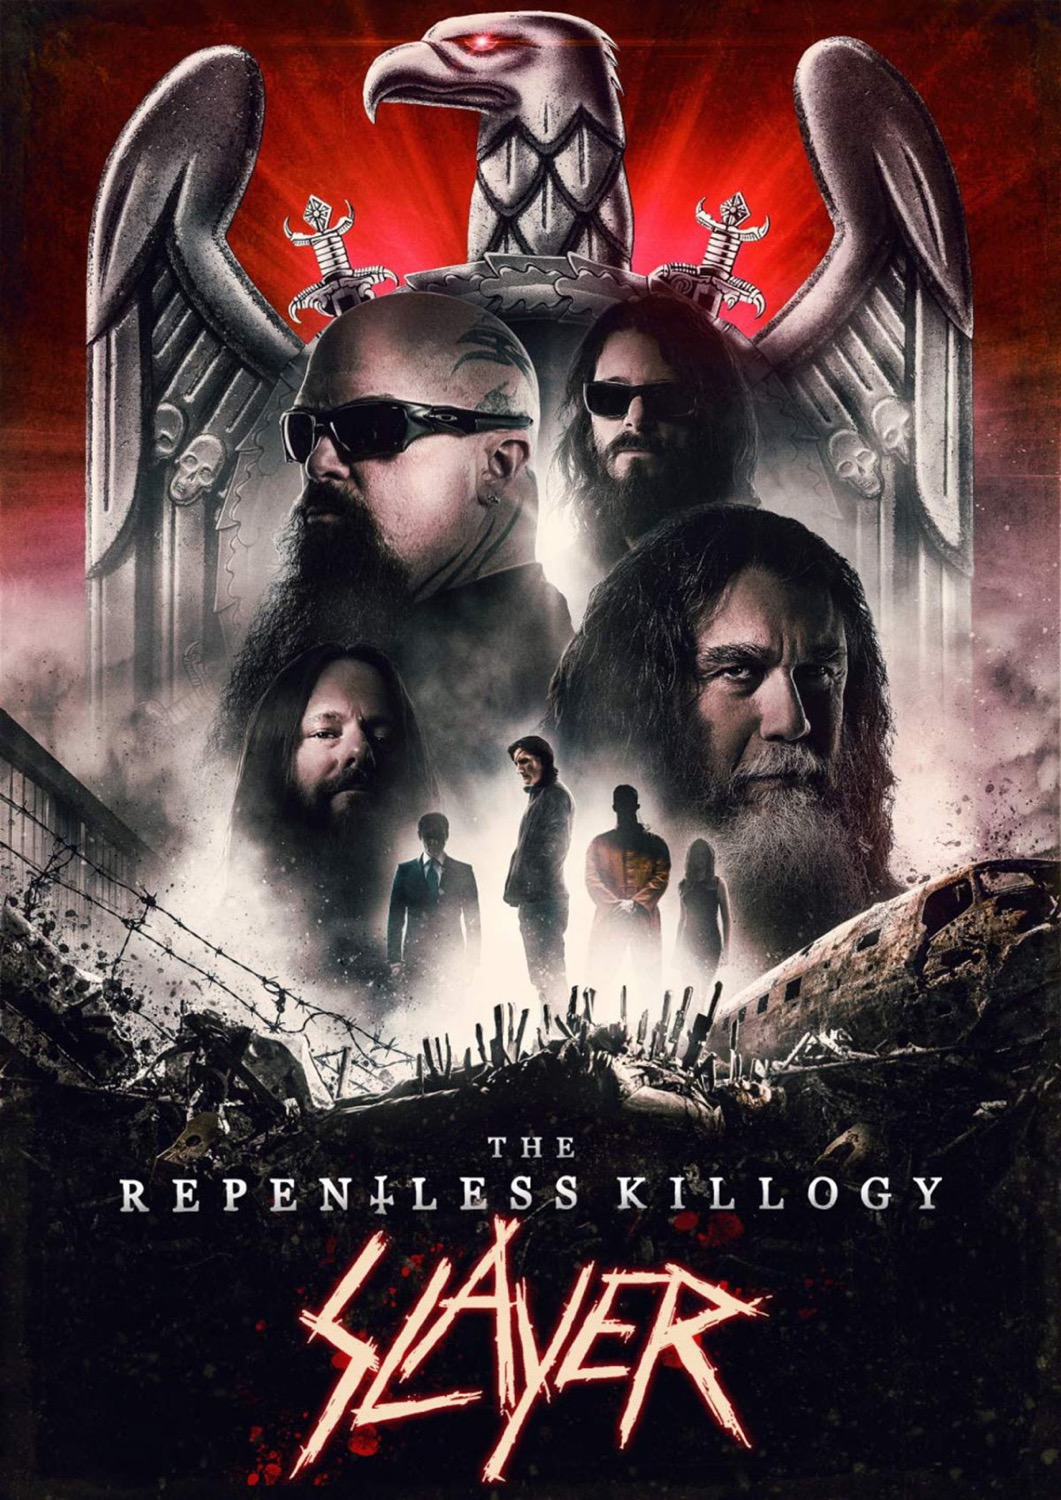 Slayer: Repentless Killlogy